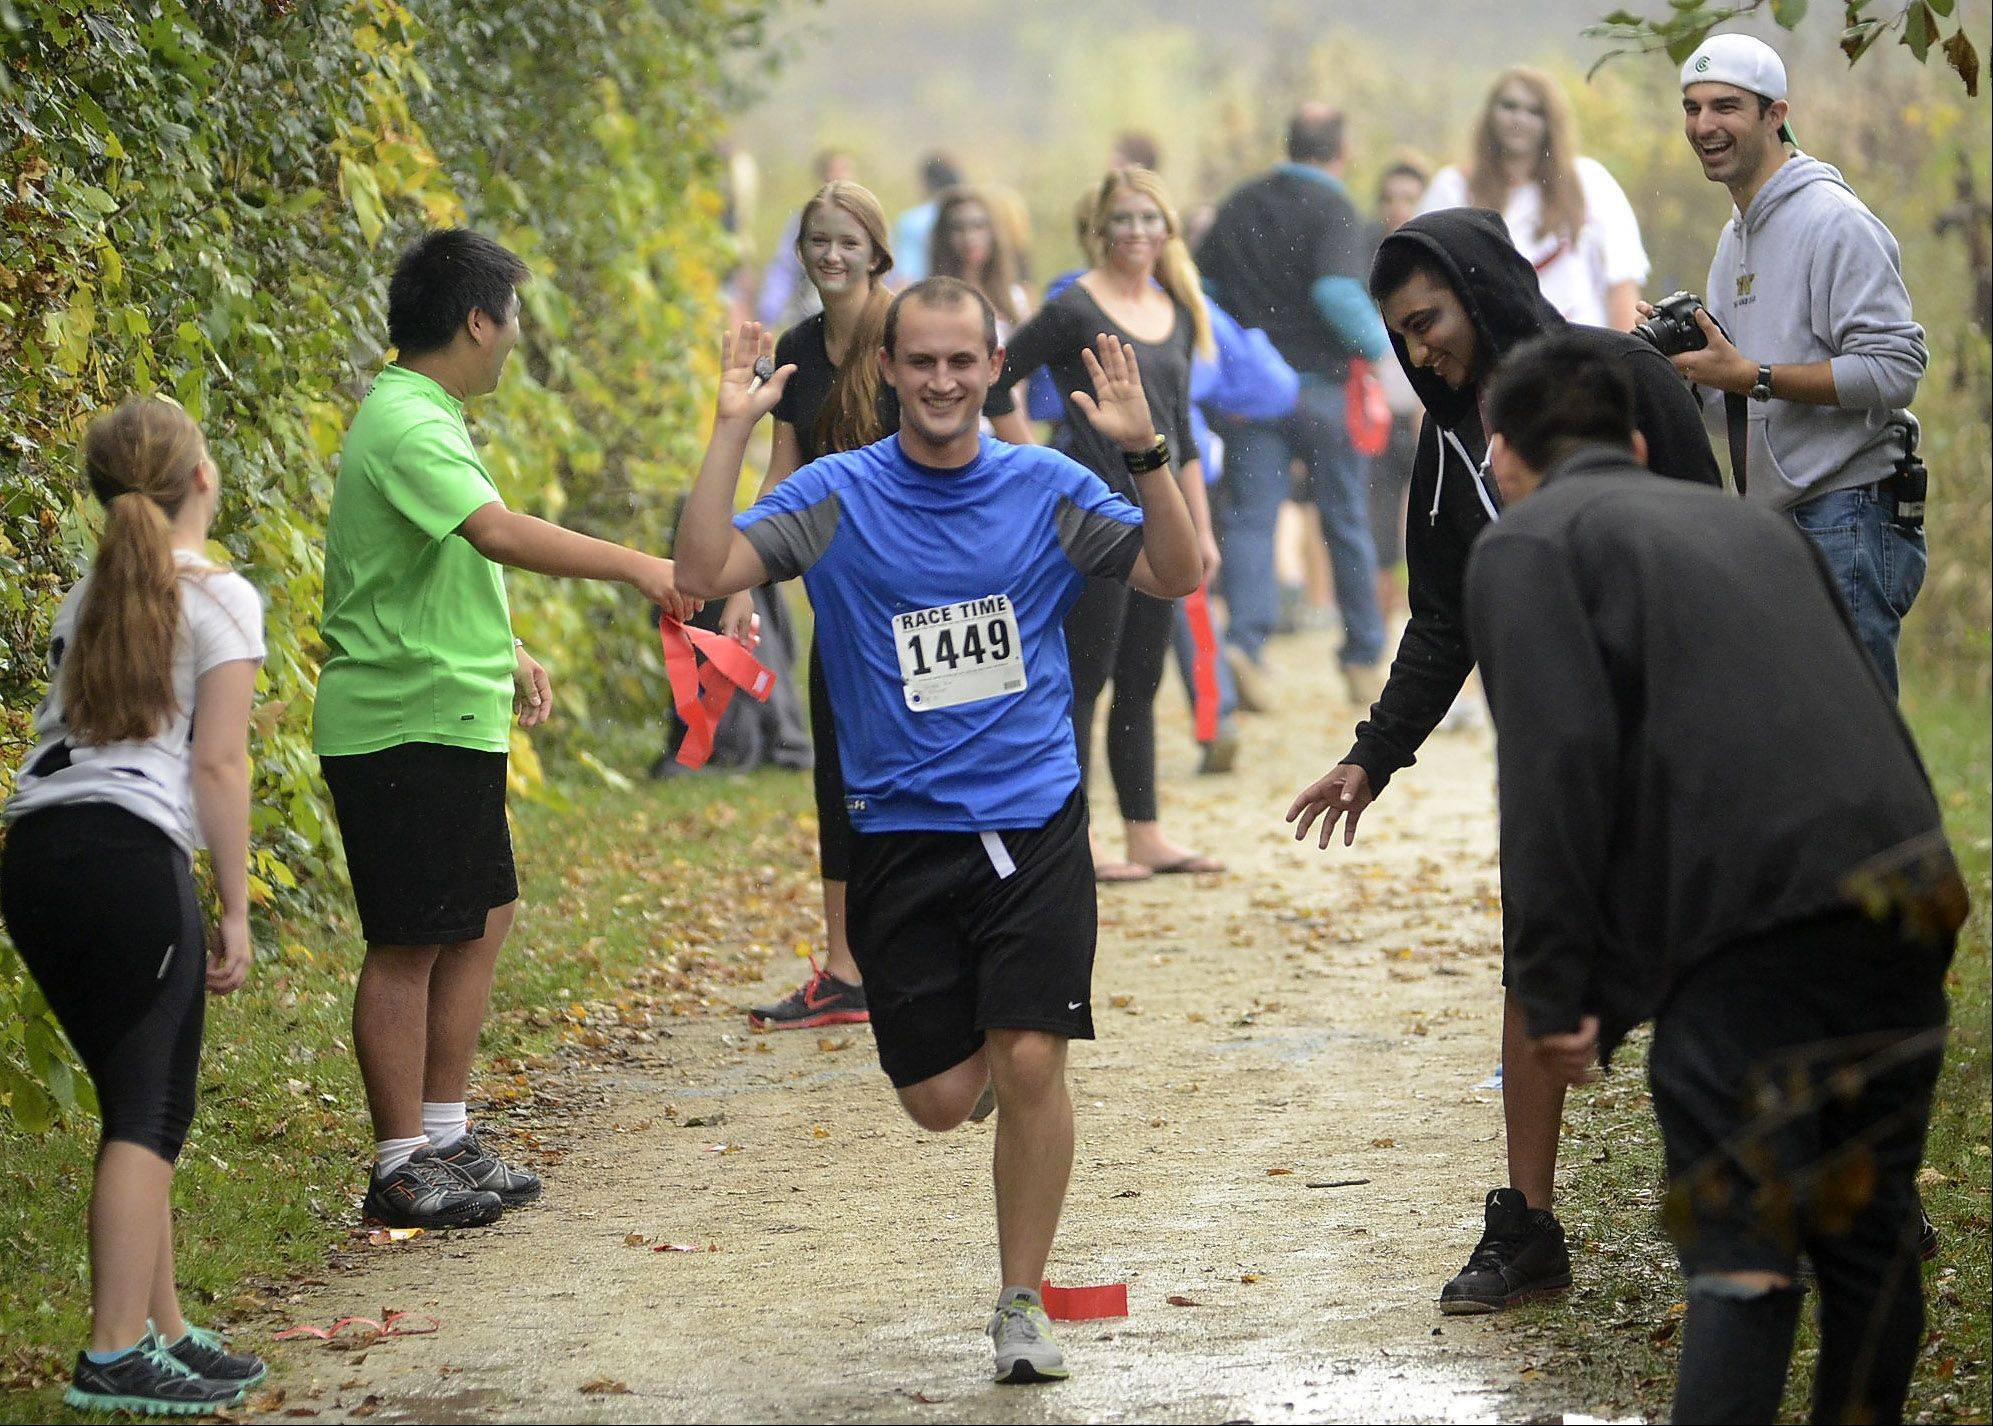 Grayslake North High School history teacher Robert Nicoletti runs the gauntlet of zombies Saturday during Grayslake's inaugural zombie run.